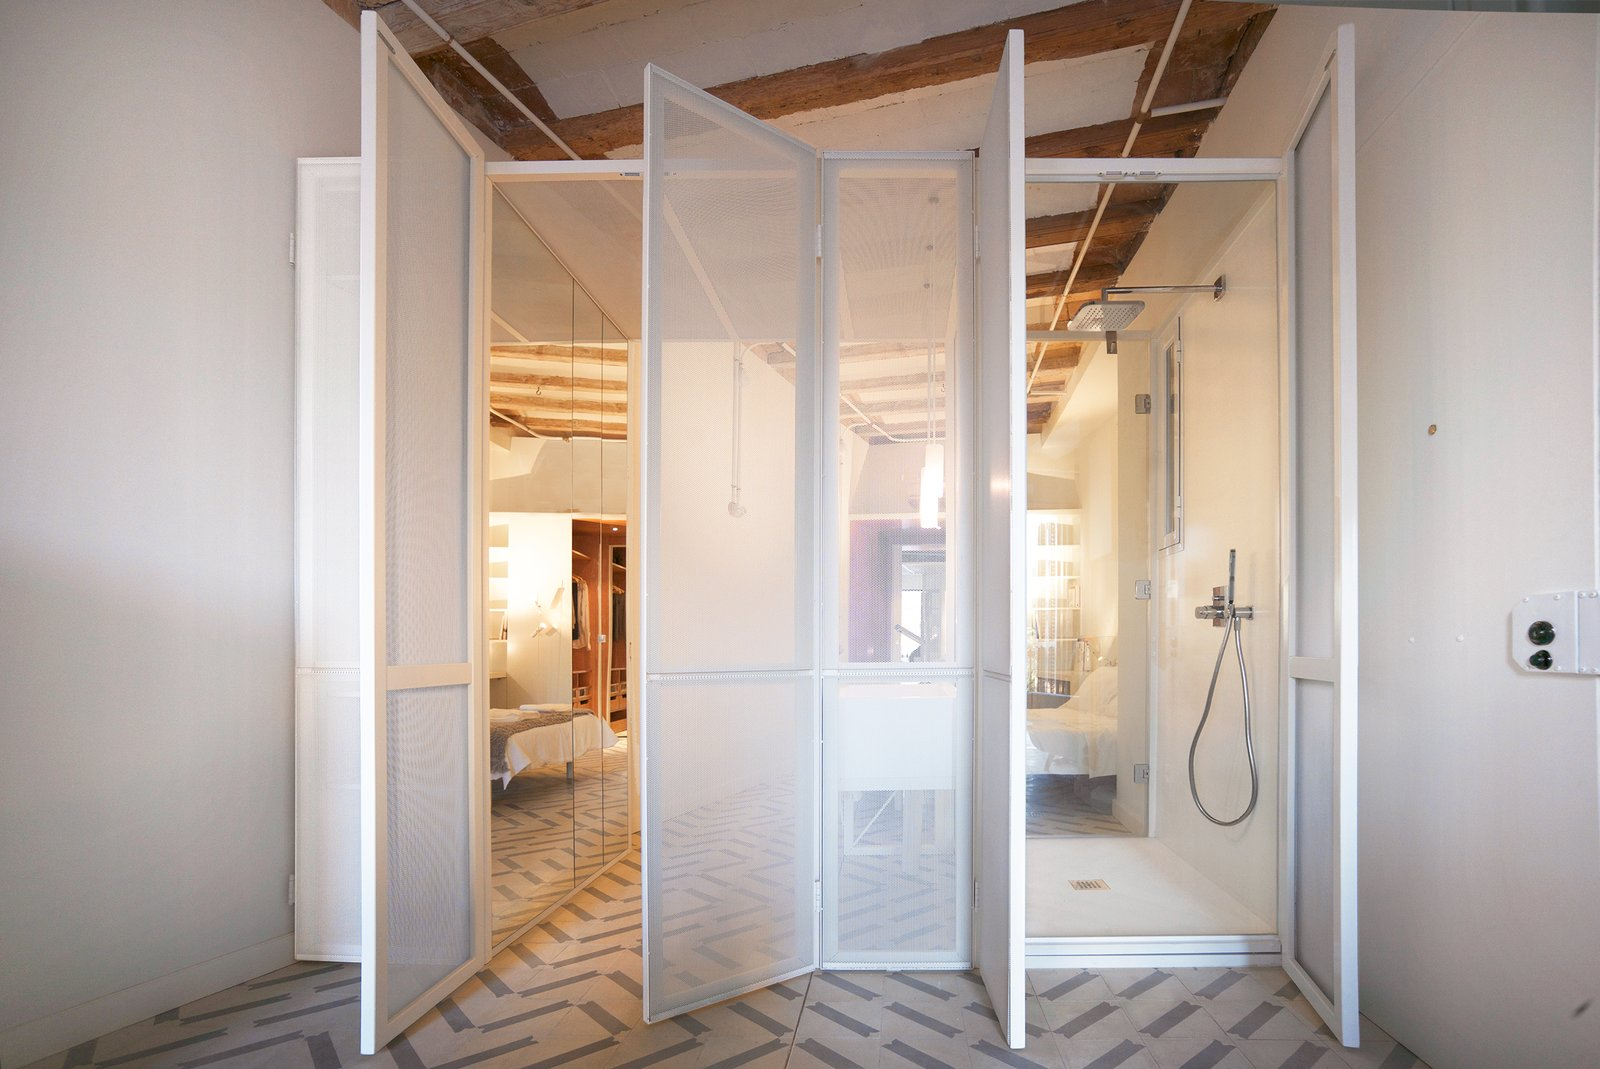 The LightBox also contains the wet area. Tagged: Bath Room, Ceiling Lighting, Pendant Lighting, One Piece Toilet, Open Shower, Freestanding Tub, and Undermount Sink.  LIGHTSLICE apartment by COMETA ARCHITECTS